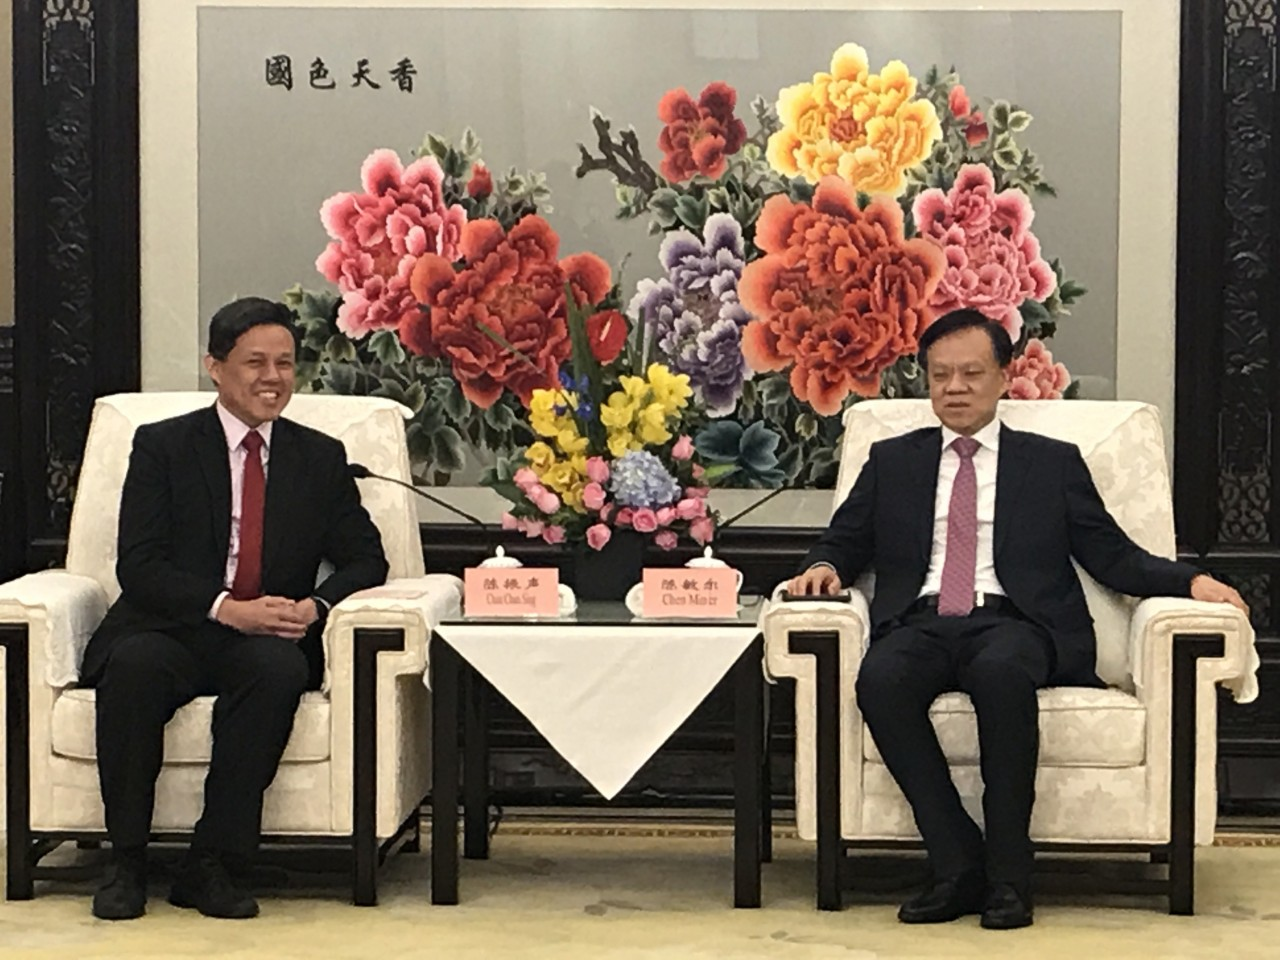 Singapore's Trade and Industry Minister Chan Chun Sing and Chongqing party boss Chen Min'er met on 7 Jan 2019 to discuss the progress of the Chongqing Connectivity Initiative, a joint project between Singapore and China. (SPH)